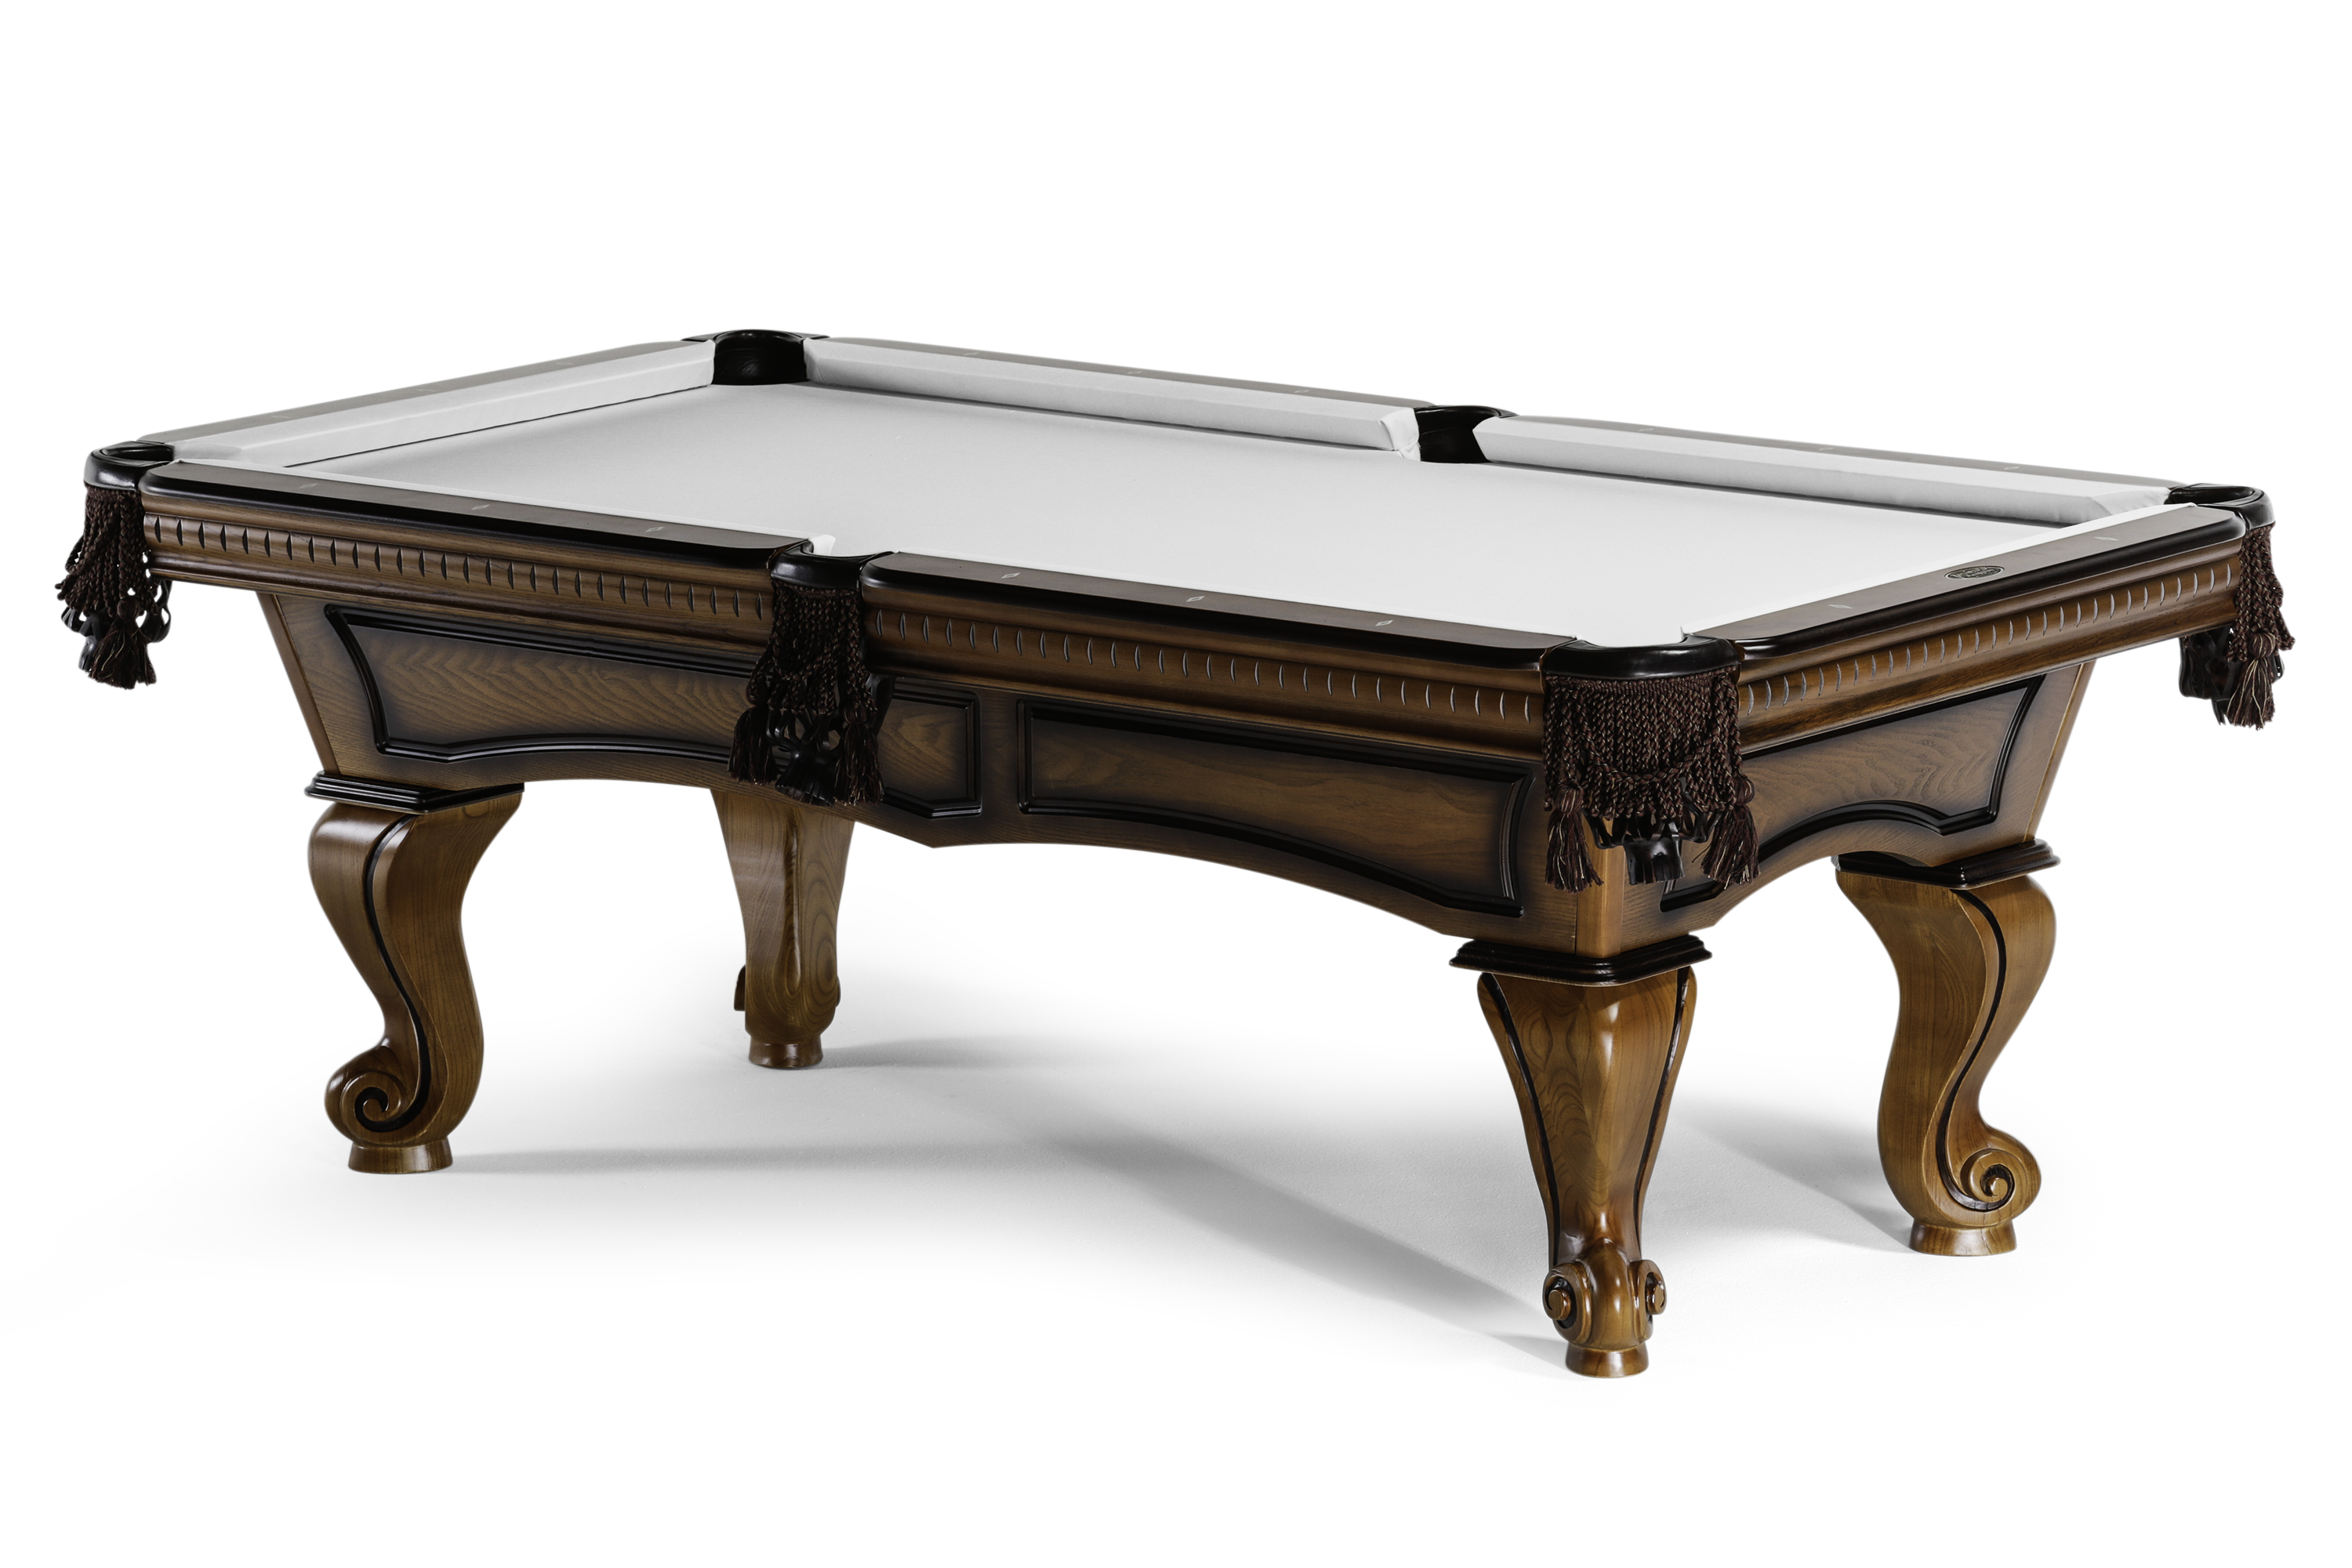 Etonnant The Spencer Marston Milano Pool Table Is A Fabulous Combination Of Elegance  And Superior Craftsmanship. The Beautiful Grain In The Solid Oak  Construction Is ...